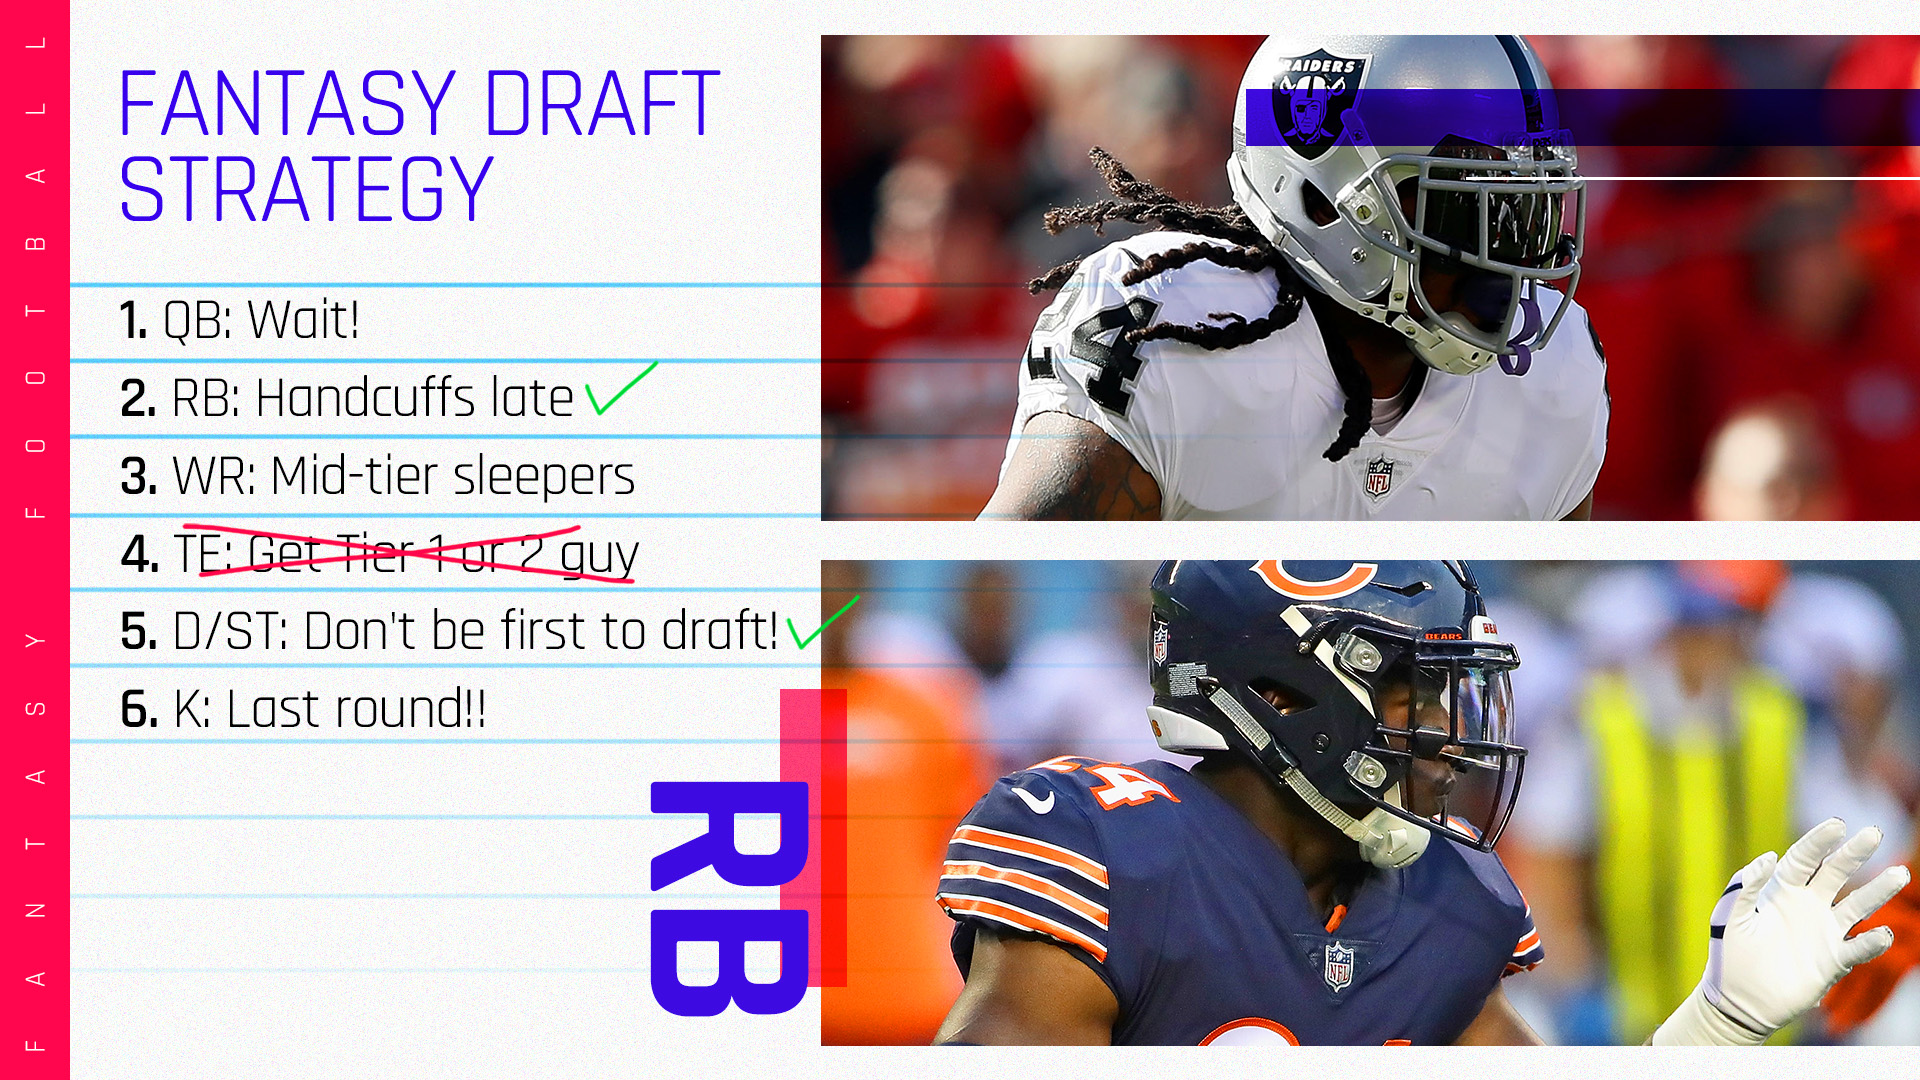 d9150c3c6 2018 Fantasy Football Rankings Tiers  Running back draft strategy ...